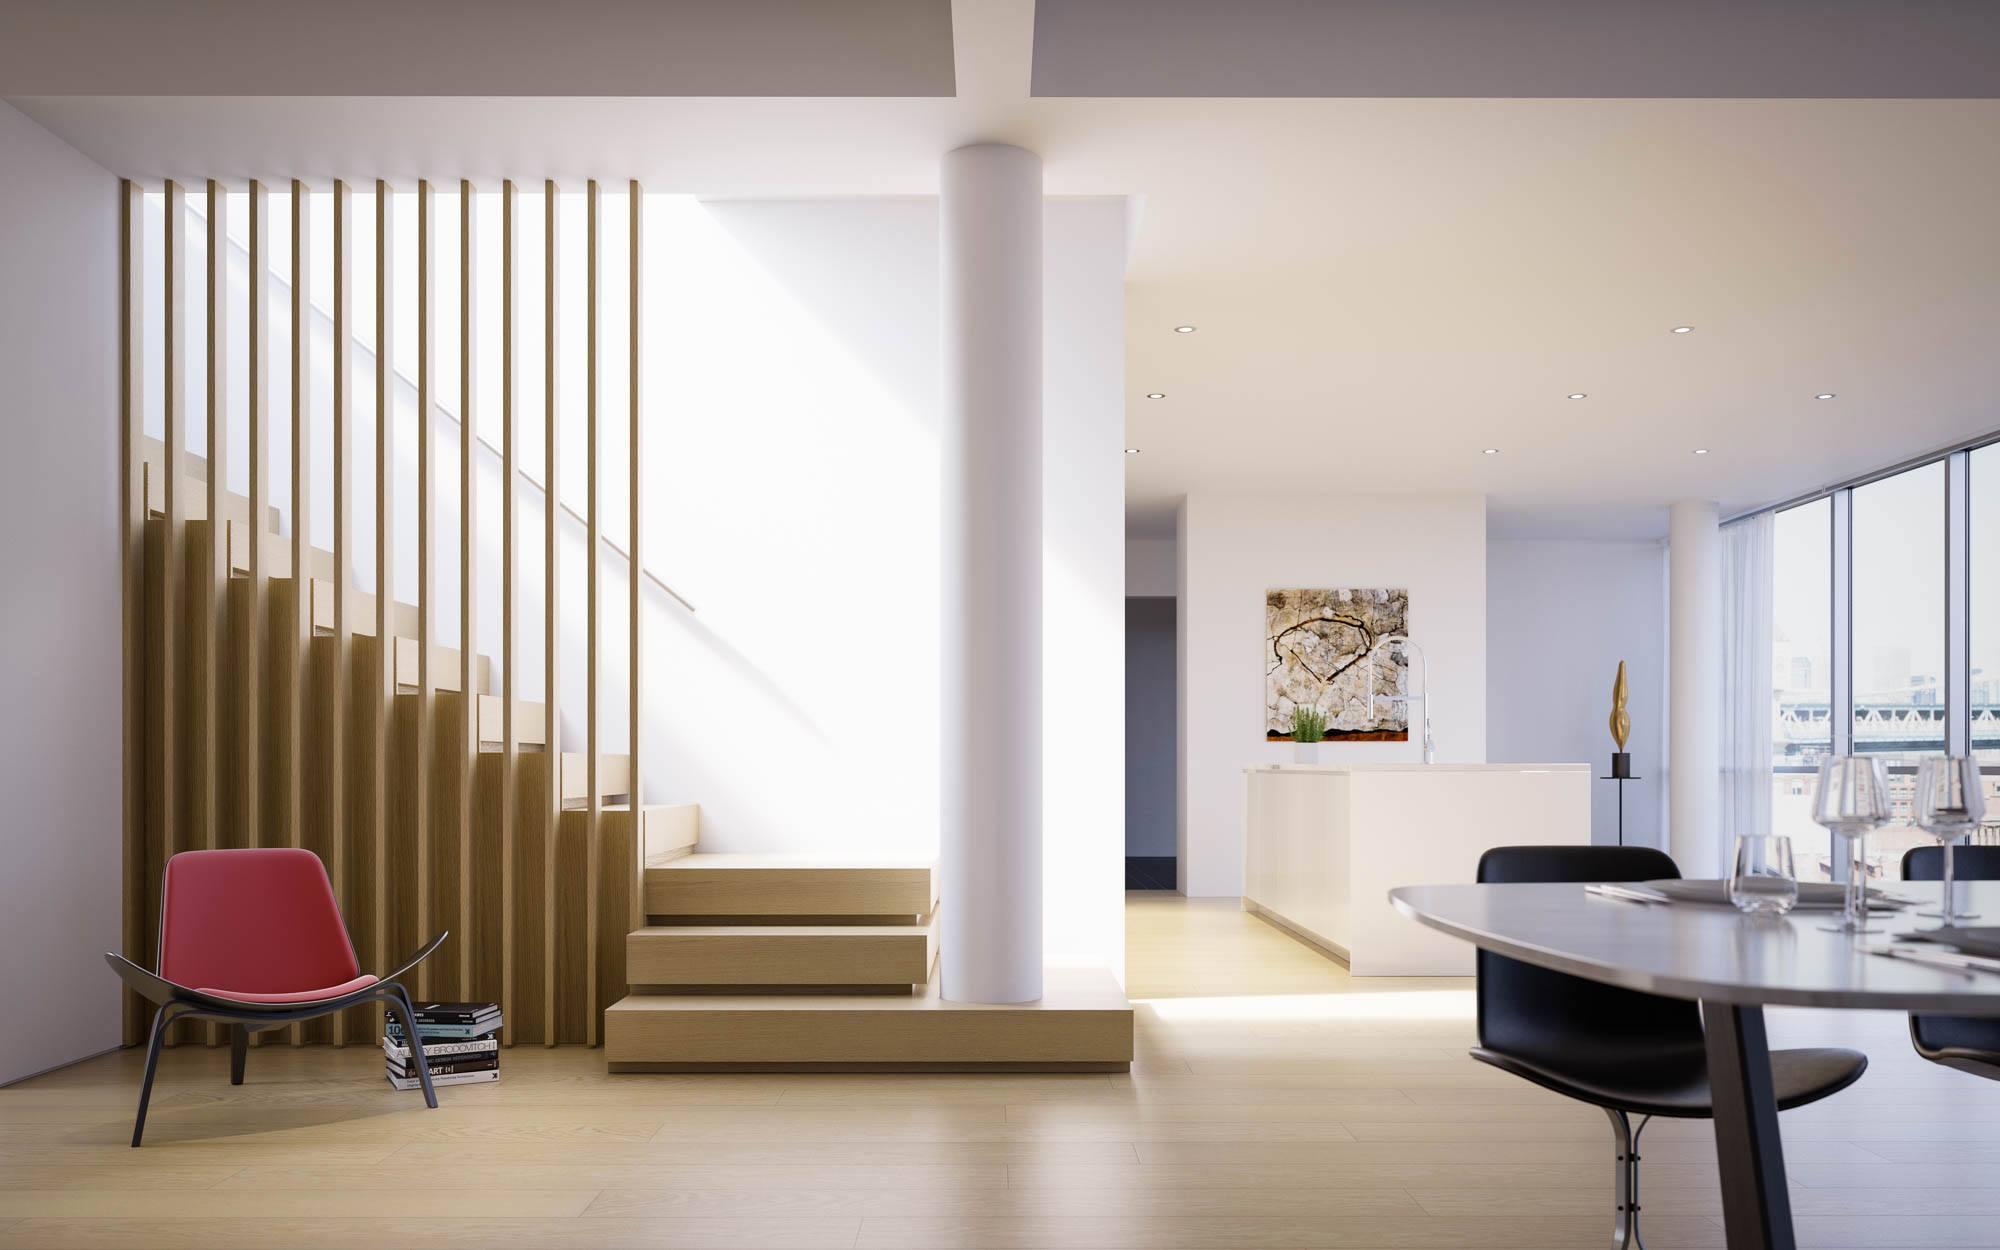 This Is Exactly What 3D Architecture And Interior Design Is Capable Of  Combining Advance Software 3D Design Application With Creativity And Style.